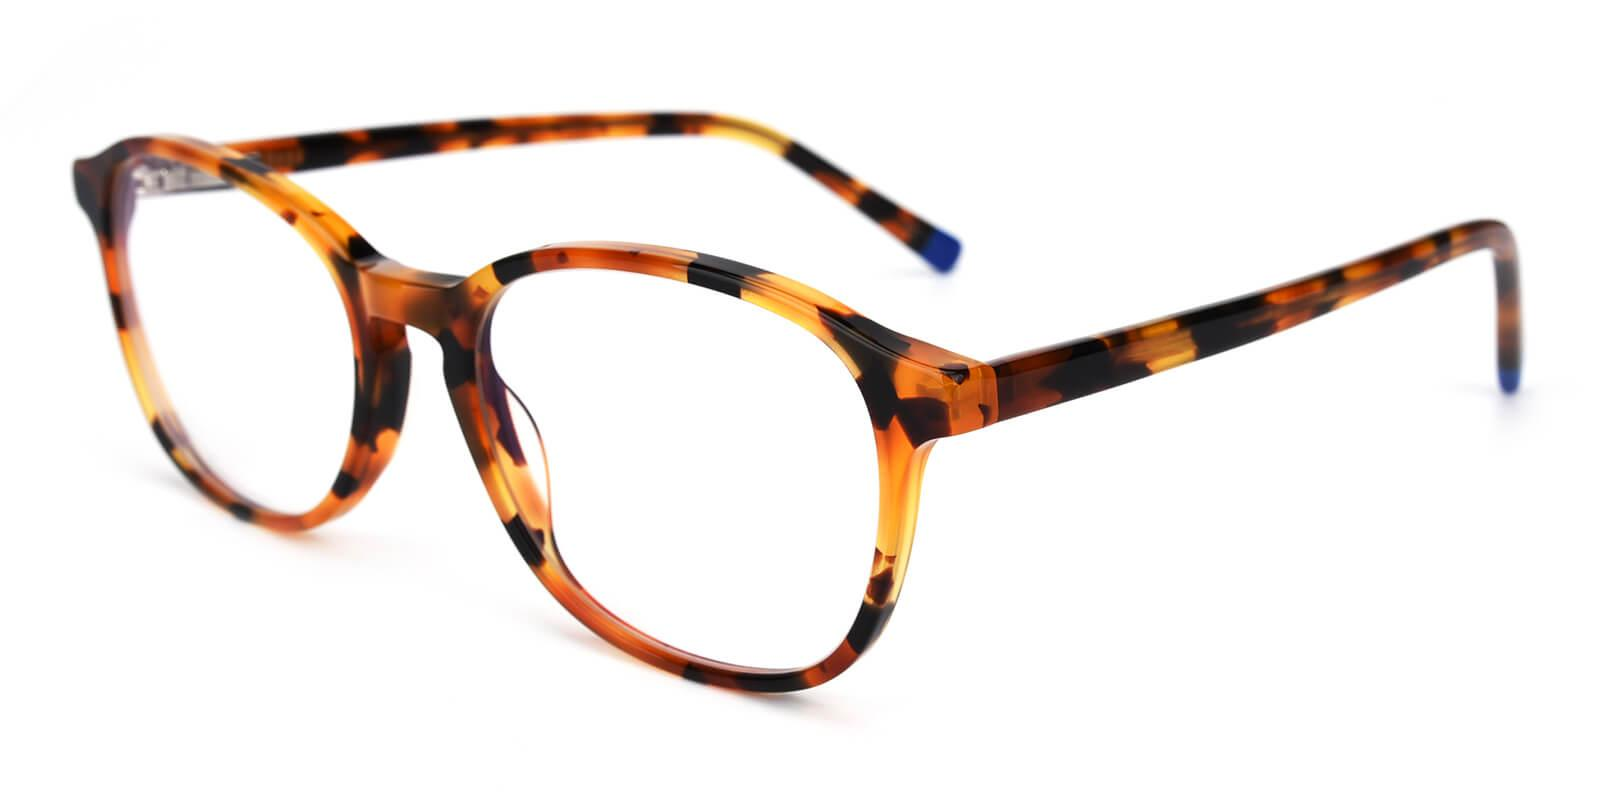 Lisbon-Tortoise-Square-Acetate-Eyeglasses-additional1